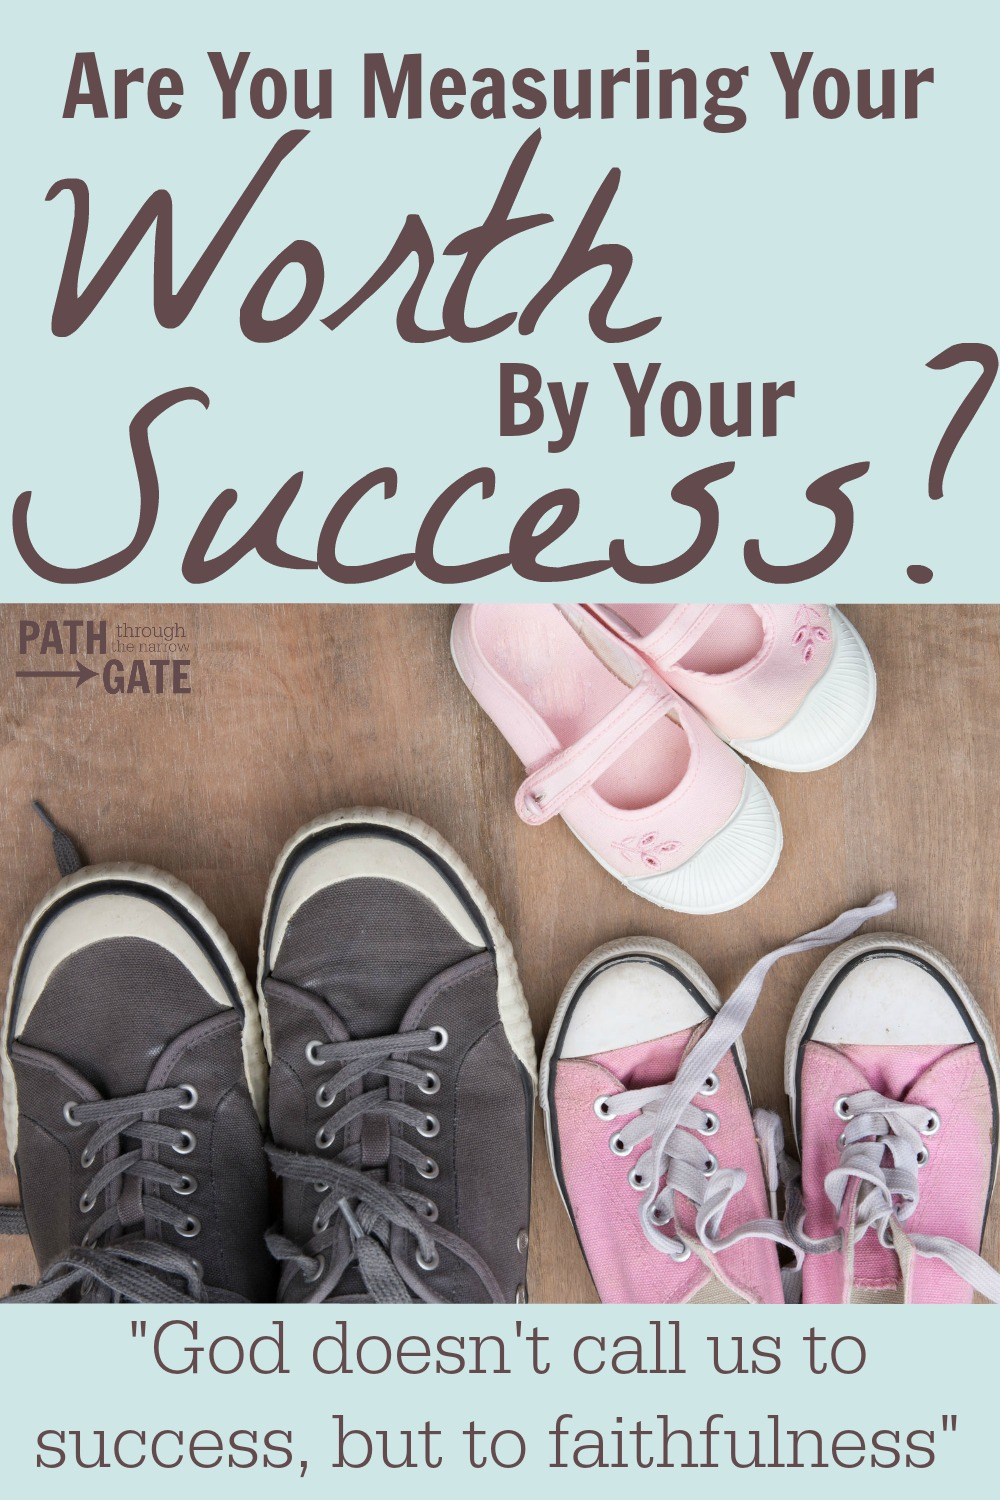 Do you measure your worth by the amount of success you have in your life? God measures your worth by your faithfulness, not your success.|Are you Measuring Your Worth by Your Success?|Path Through the Narrow Gate